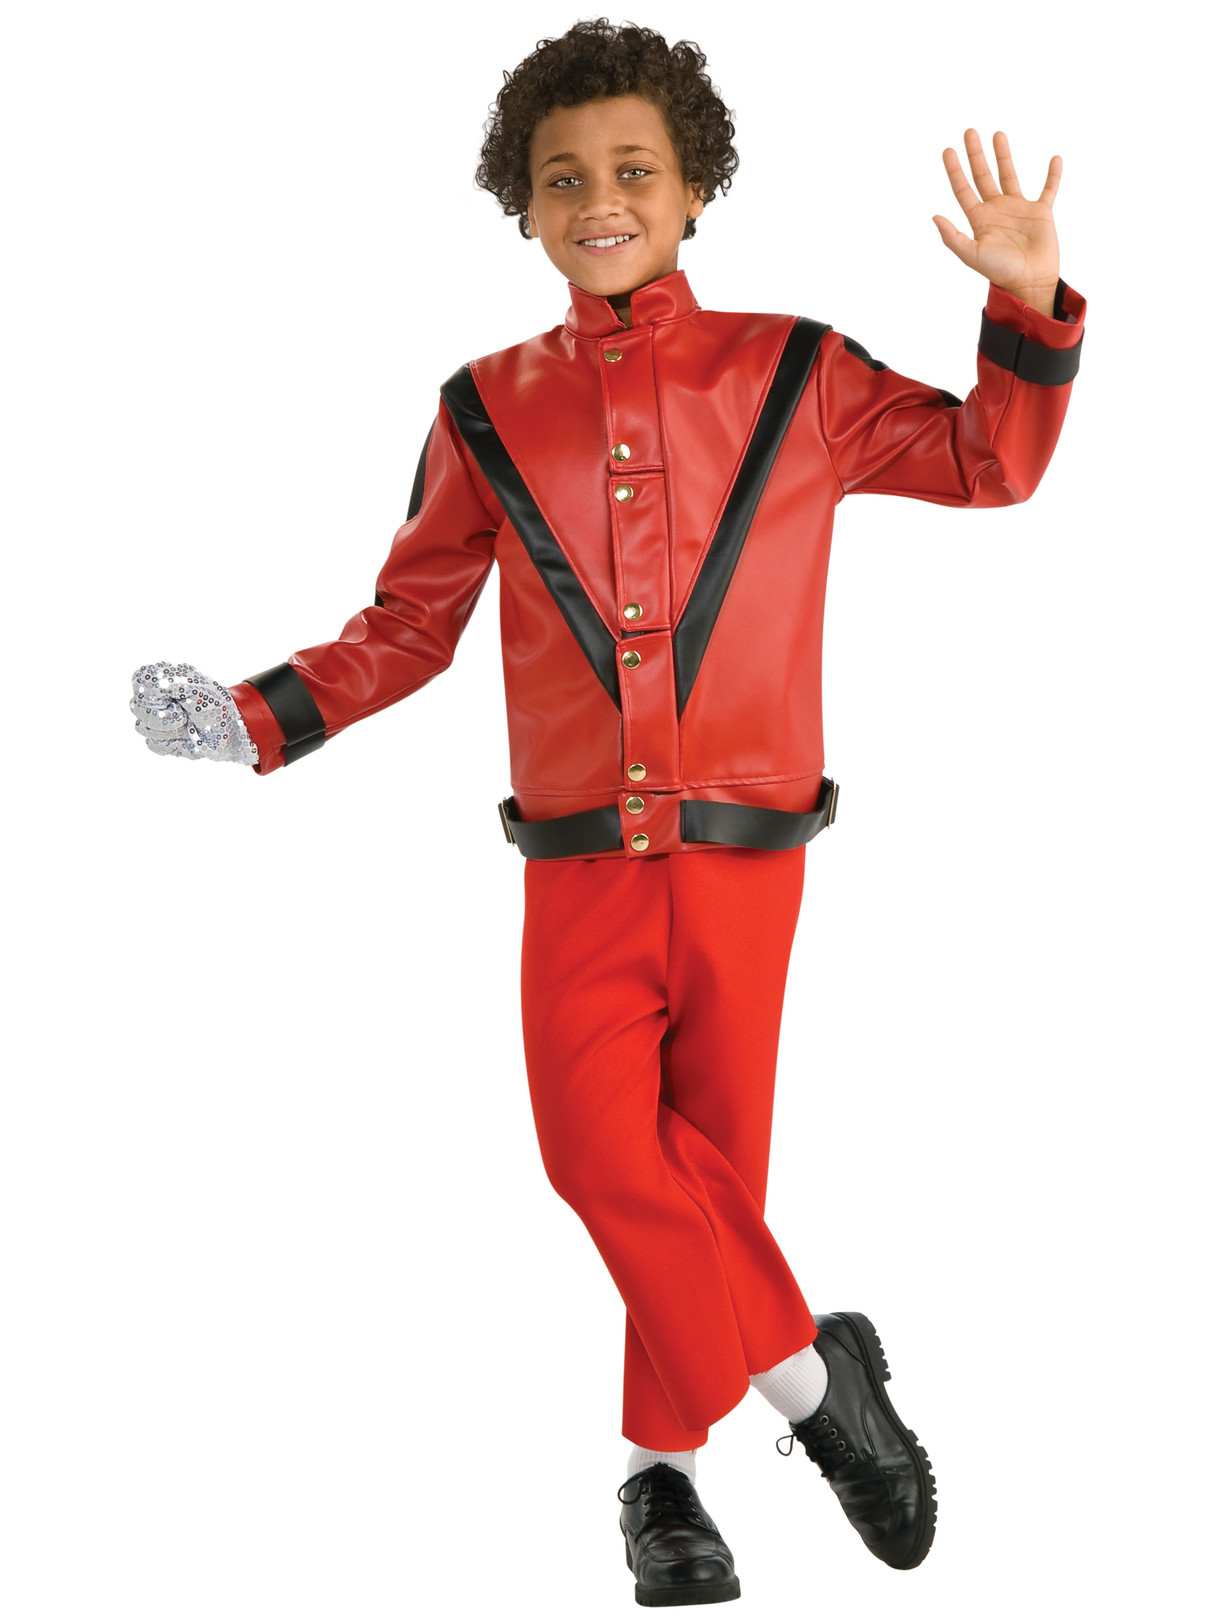 Rubie's Red Thriller Deluxe Kids Michael Jackson Jacket